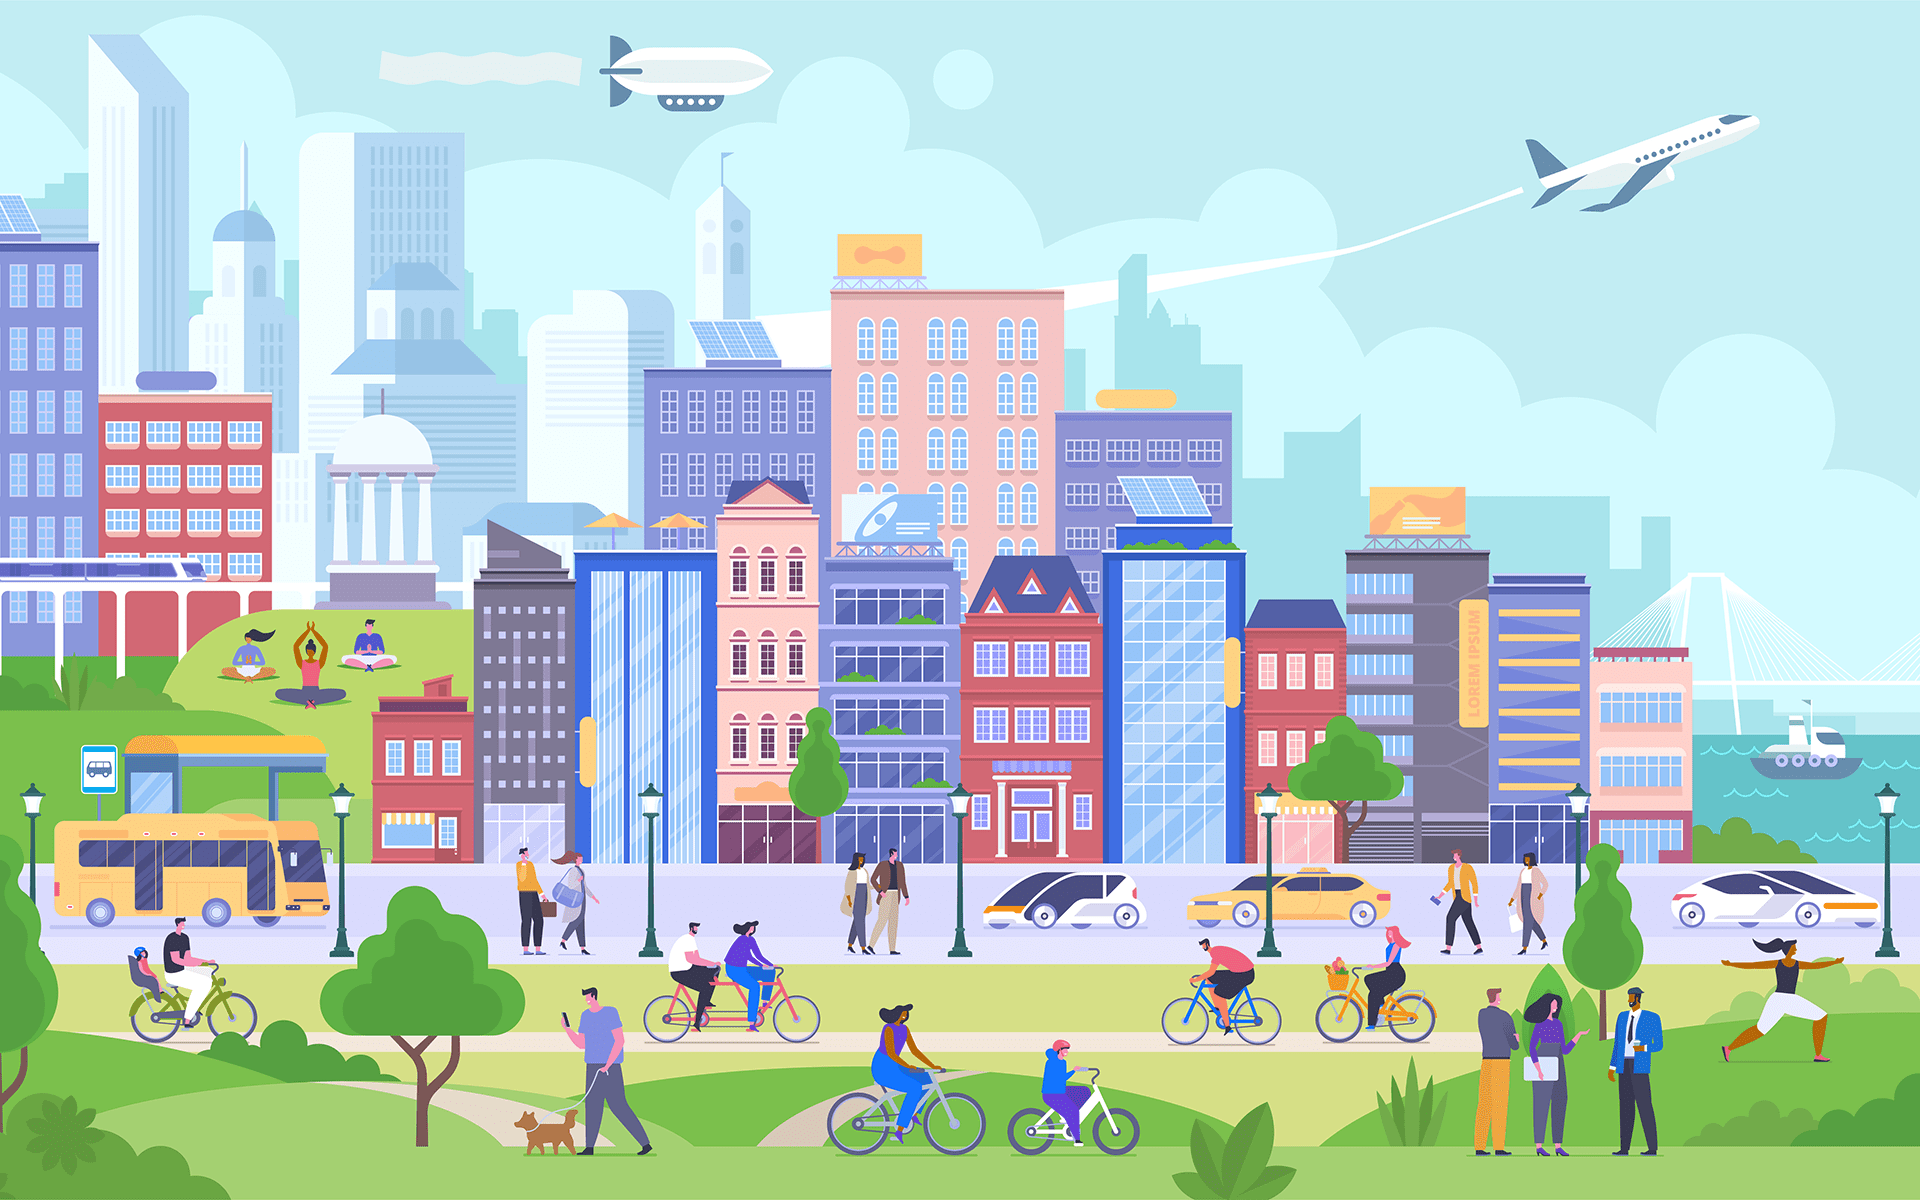 How 3 American Cities Are Embracing Mindfulness—Illustration of a busy and bright colored street scap on a sunny day with a green park in the foreground and colorful buildings behind.